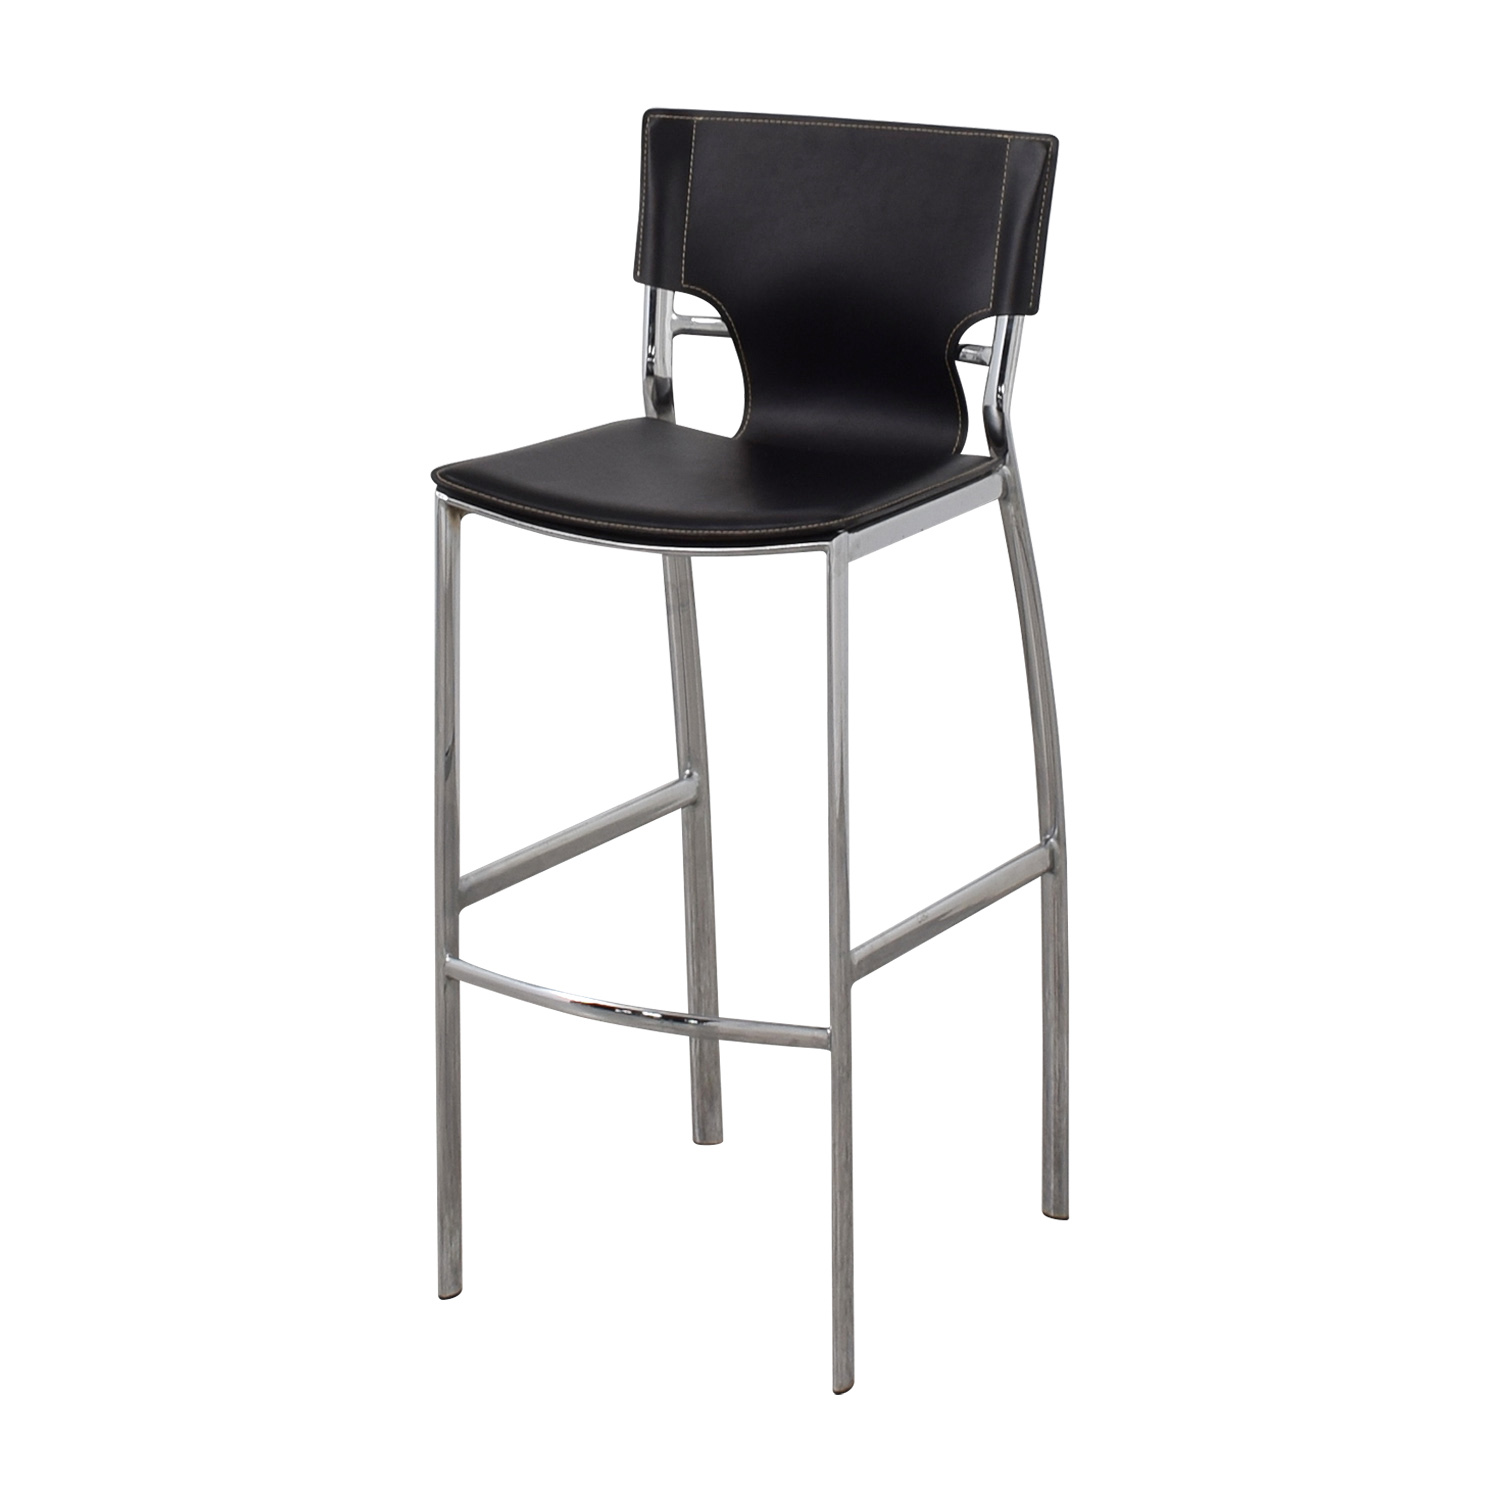 Modern Black Leatherette and Chrome Bar Chair sale